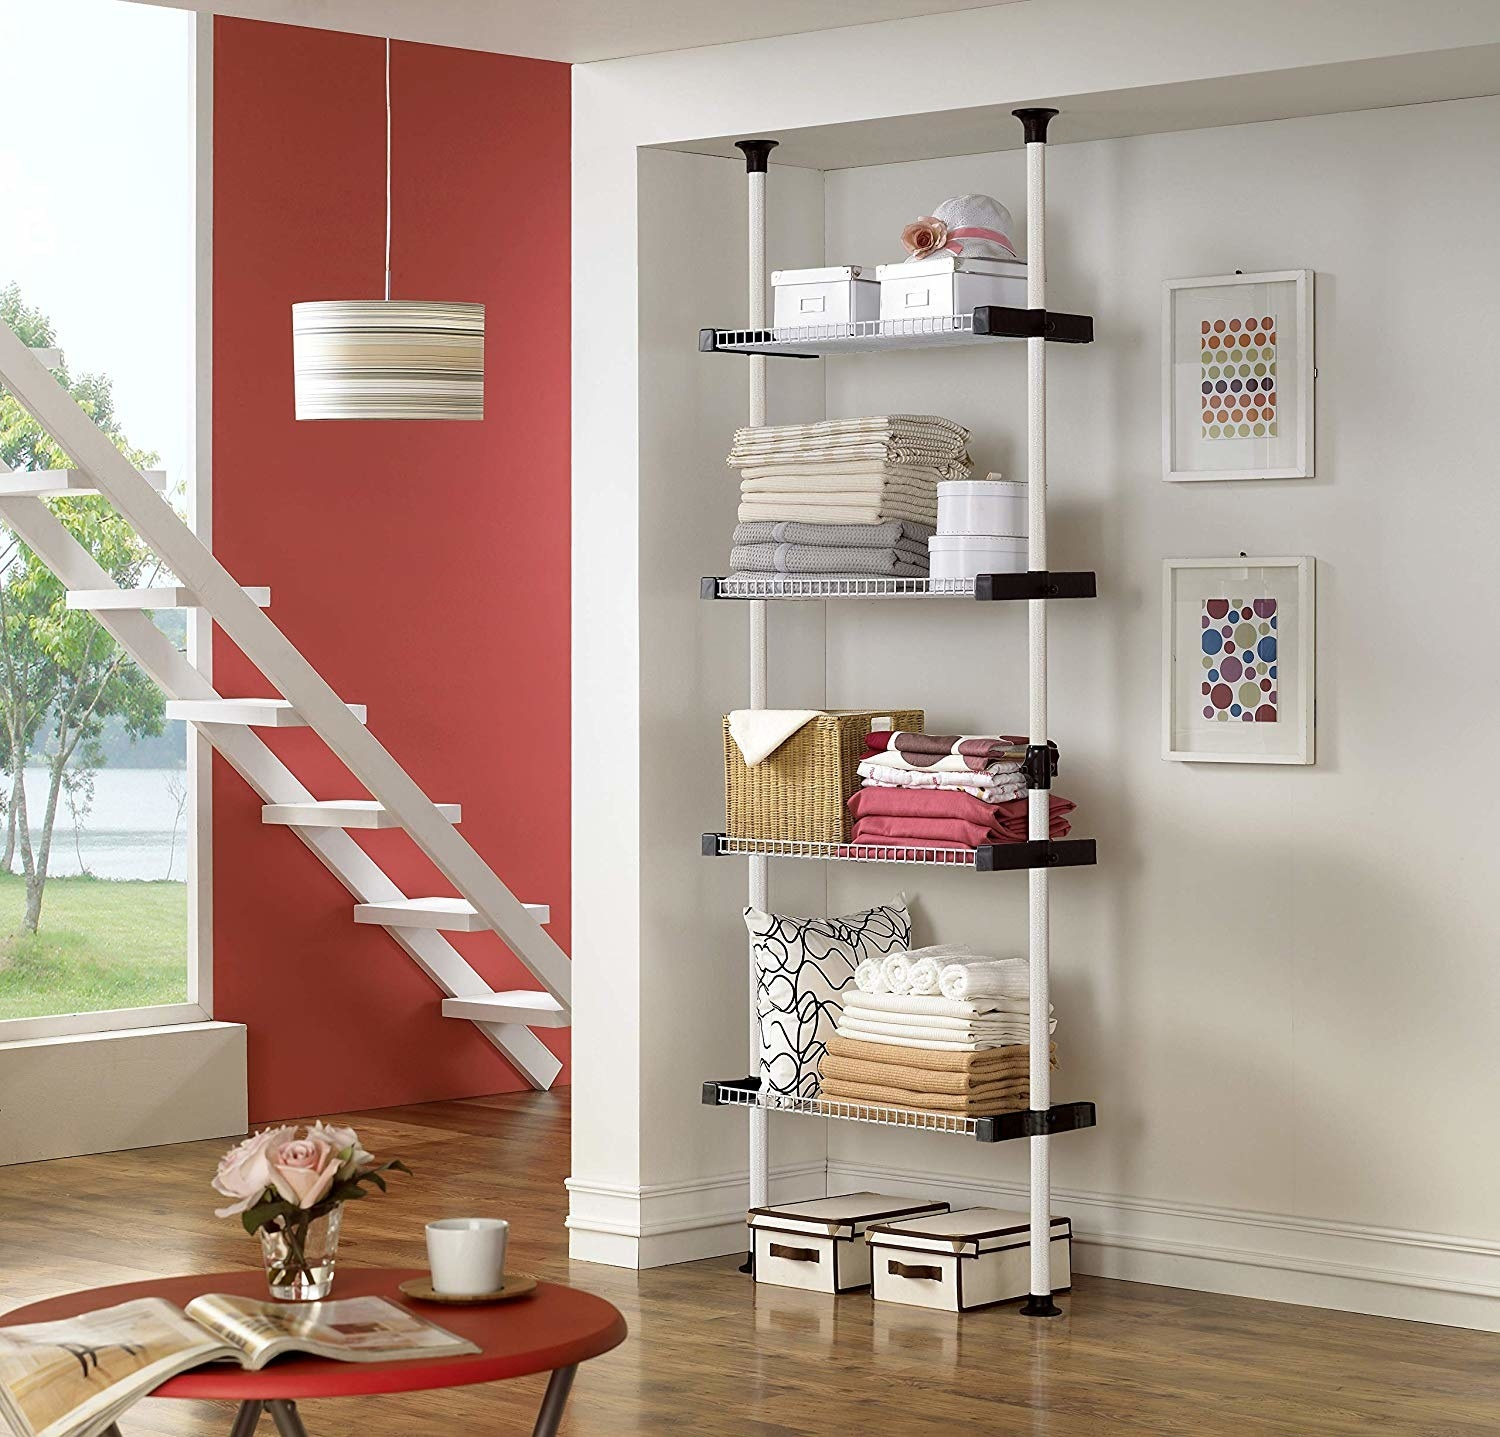 The four-shelf closet system secured in a wall nook